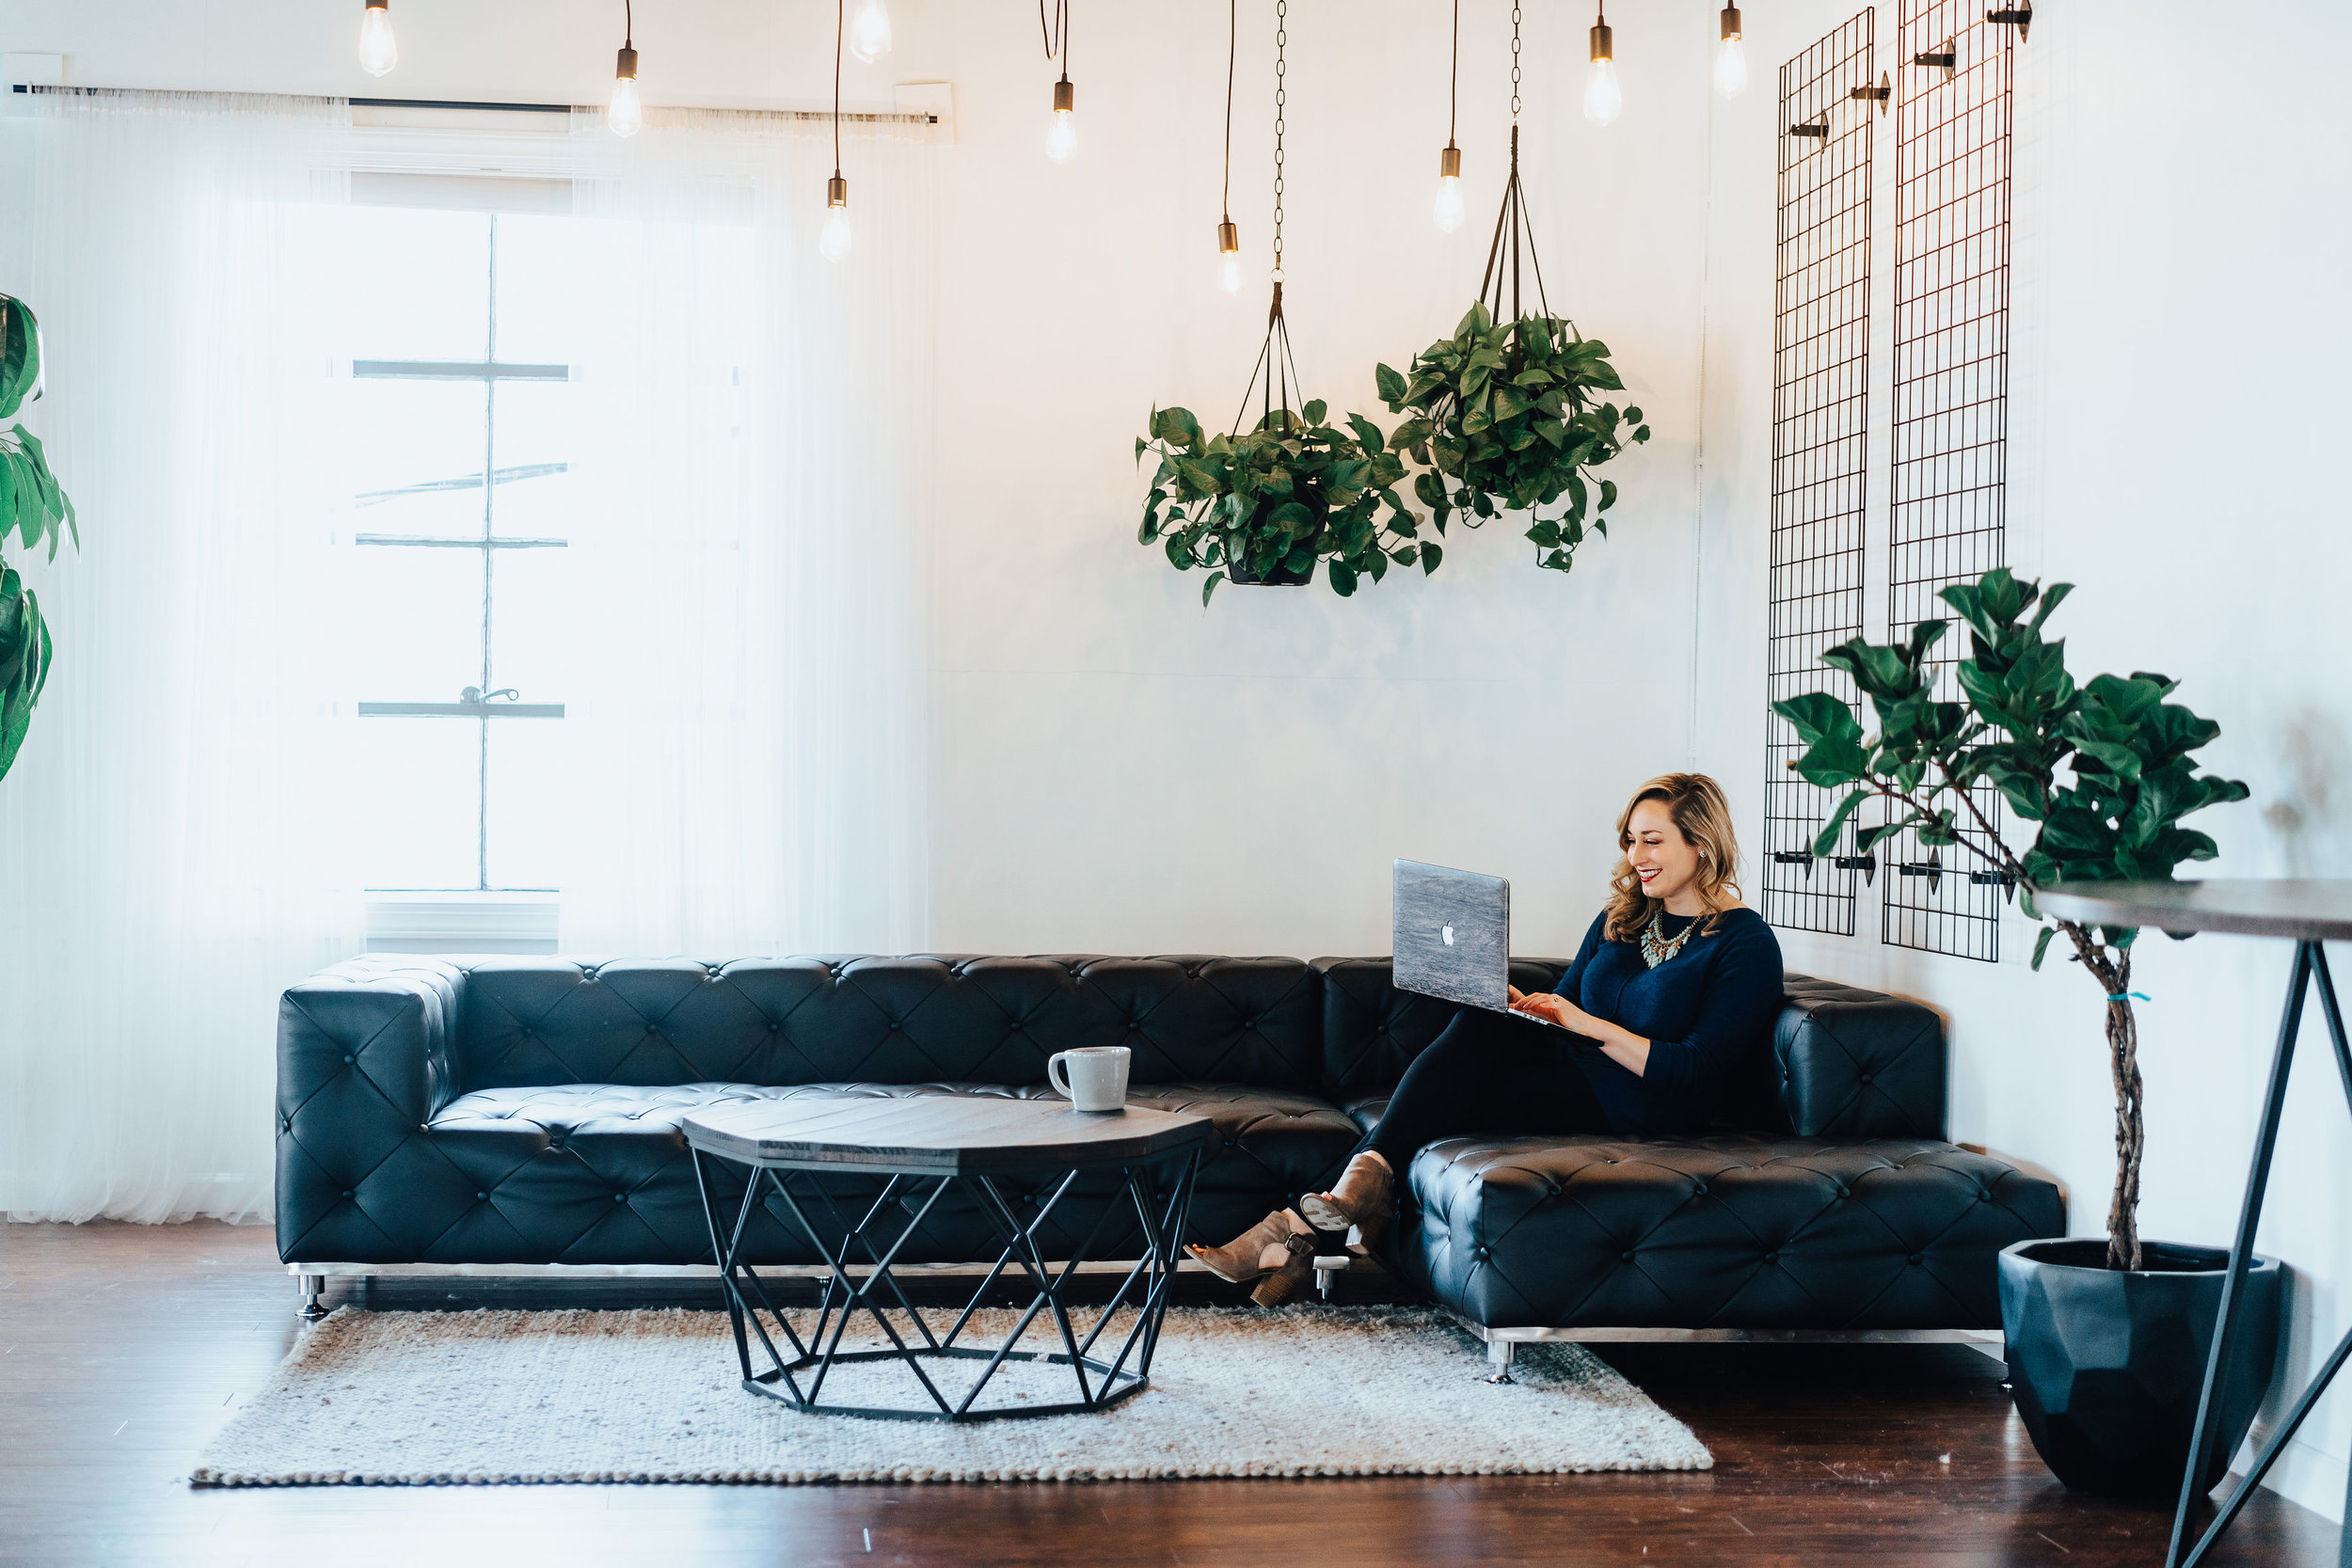 Woman Entrepreneur Works on Laptop on Couch